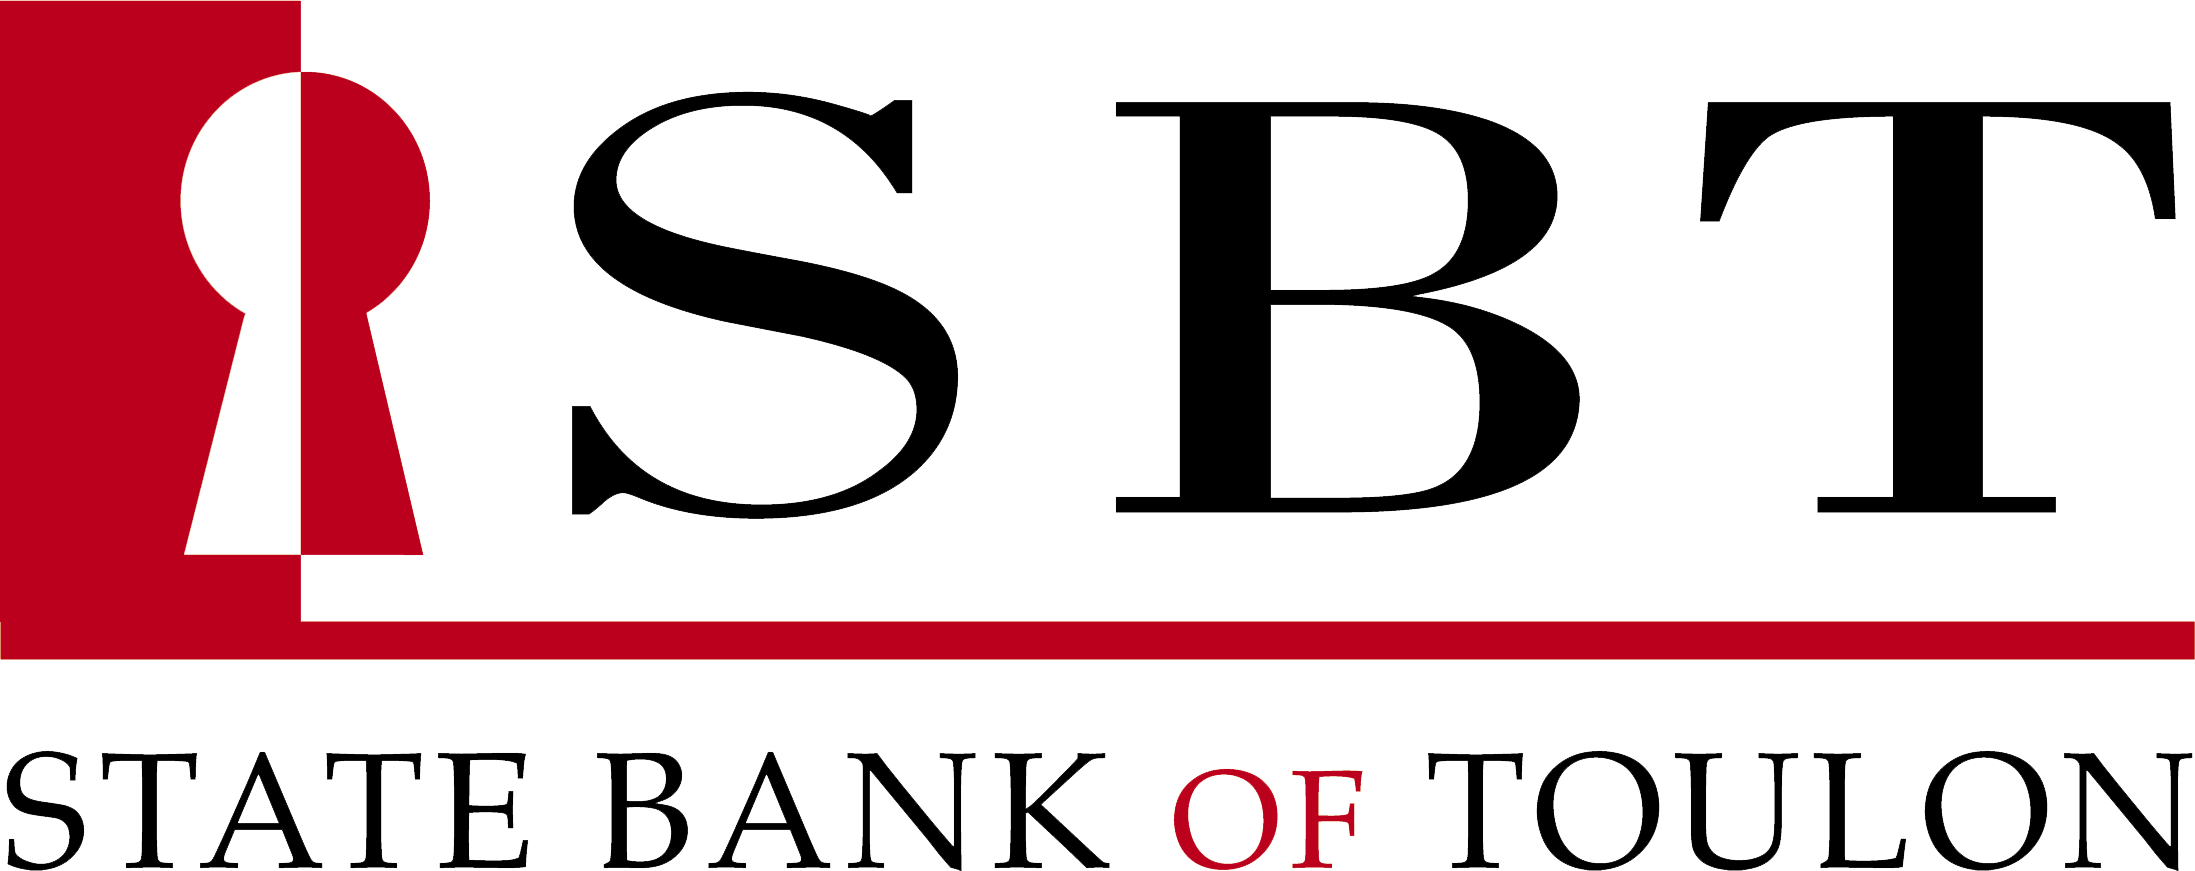 State Bank of Toulon Logo